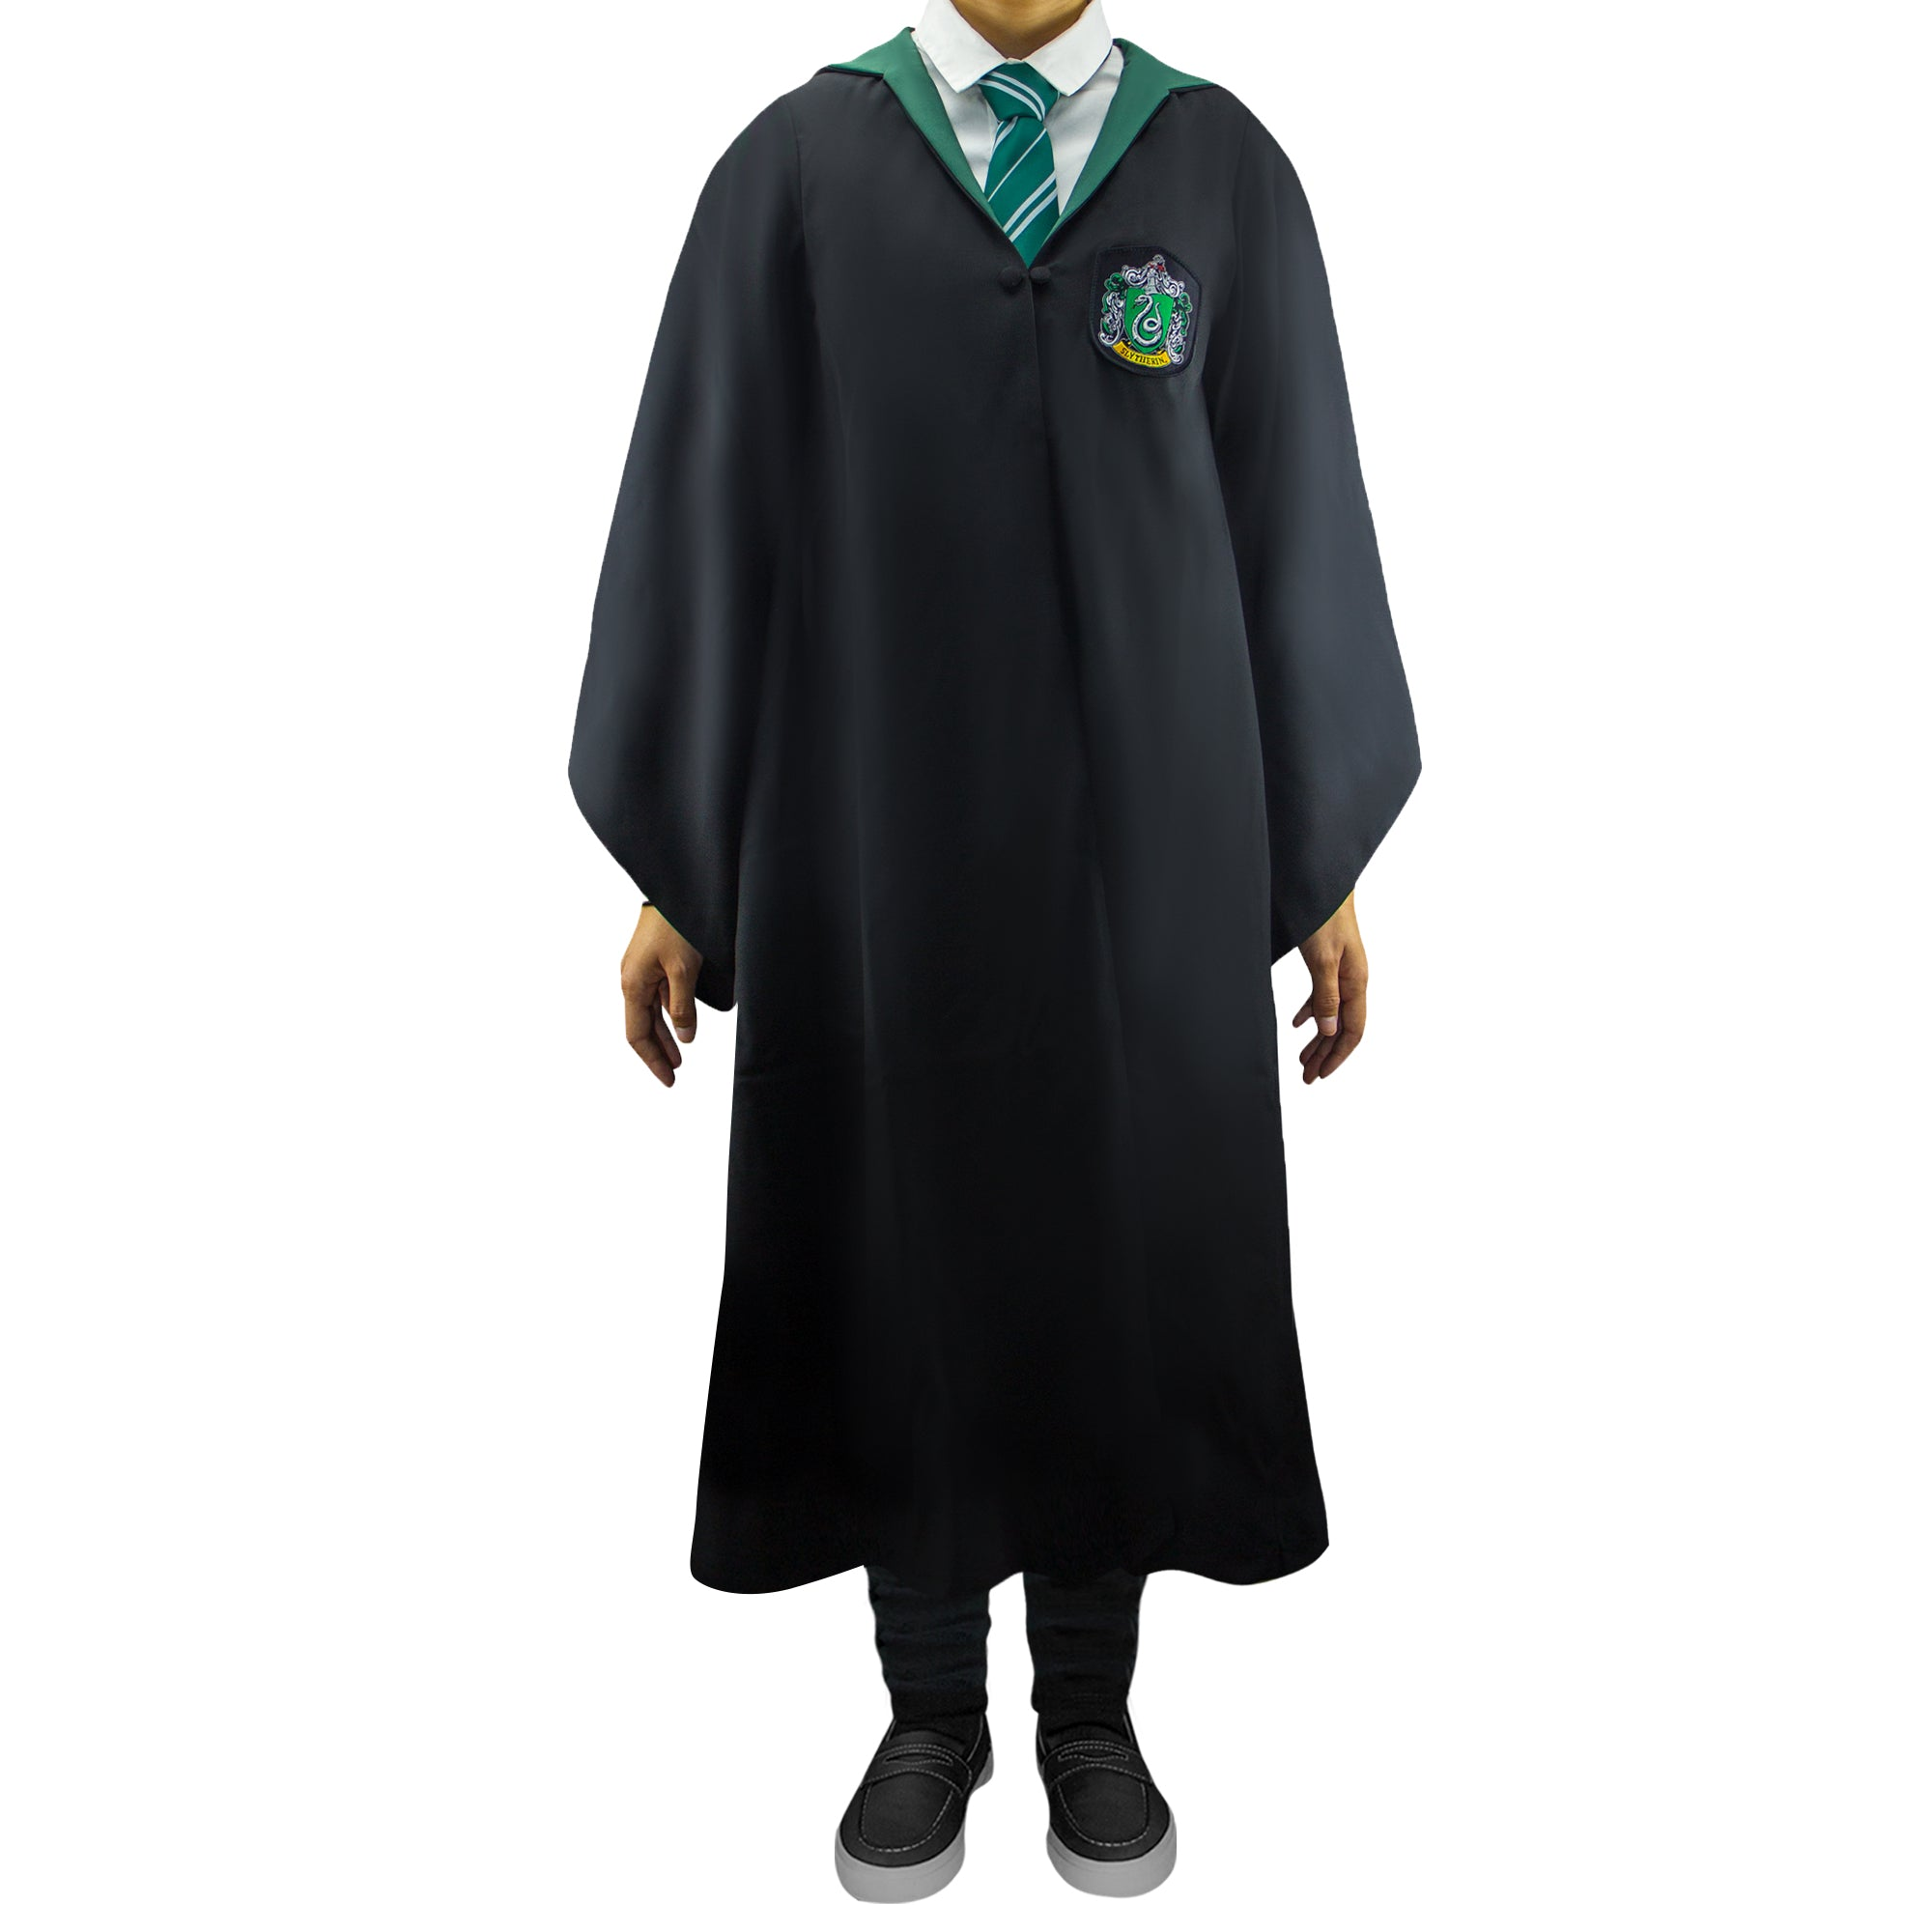 CNR - Túnica Harry Potter Slytherin